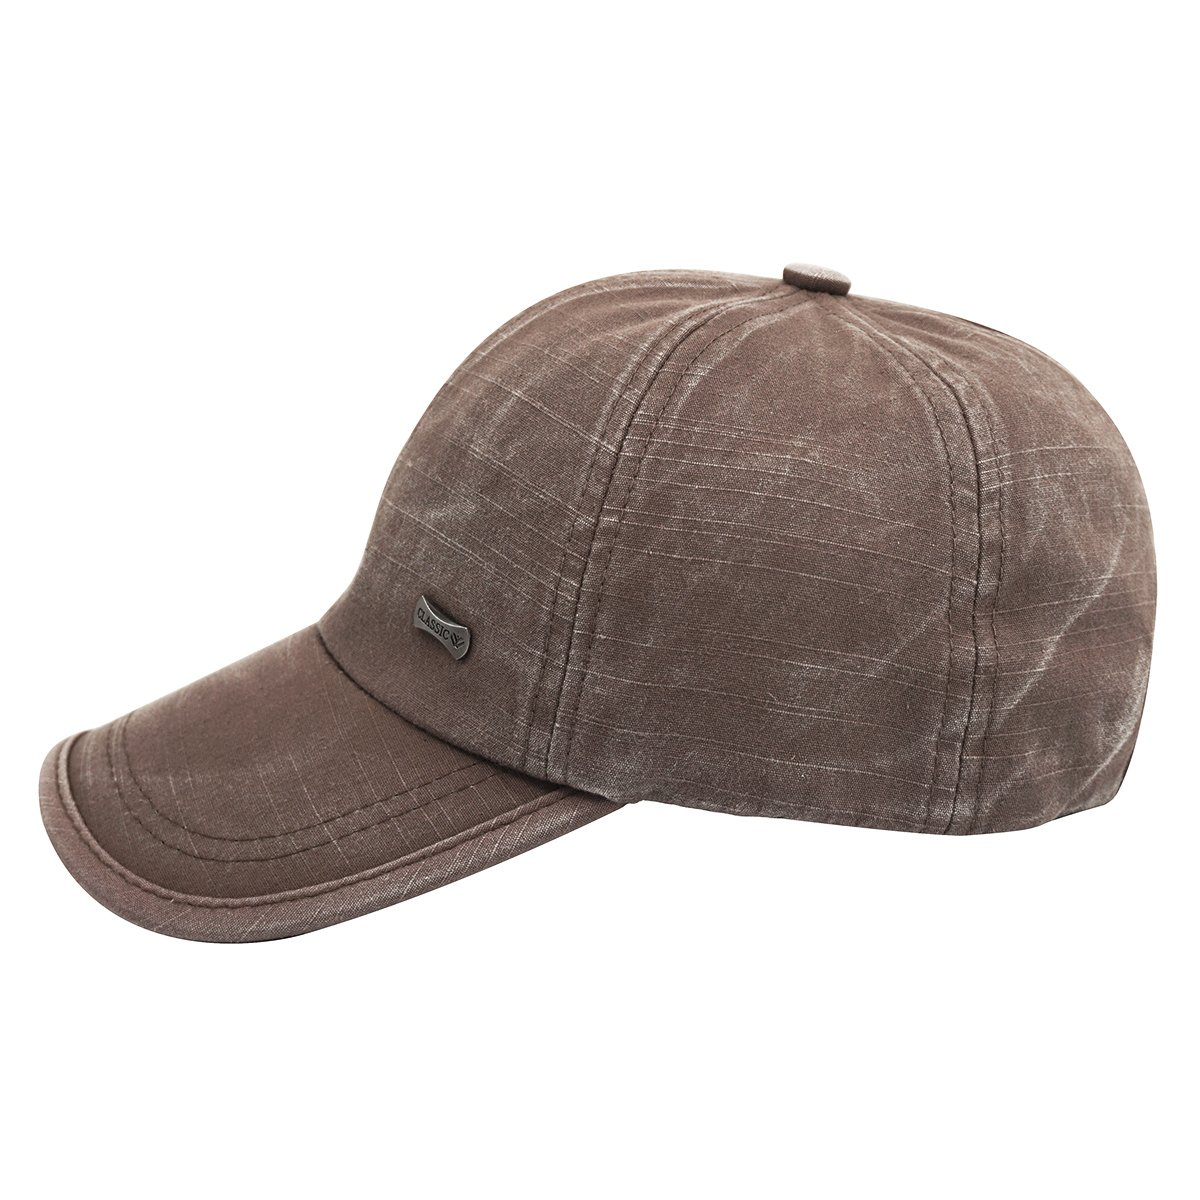 a500f982 Glamorstar Trendy Baseball Caps Adjustable Distressed Washed Cotton Ball Hat  Brown at Amazon Women's Clothing store: